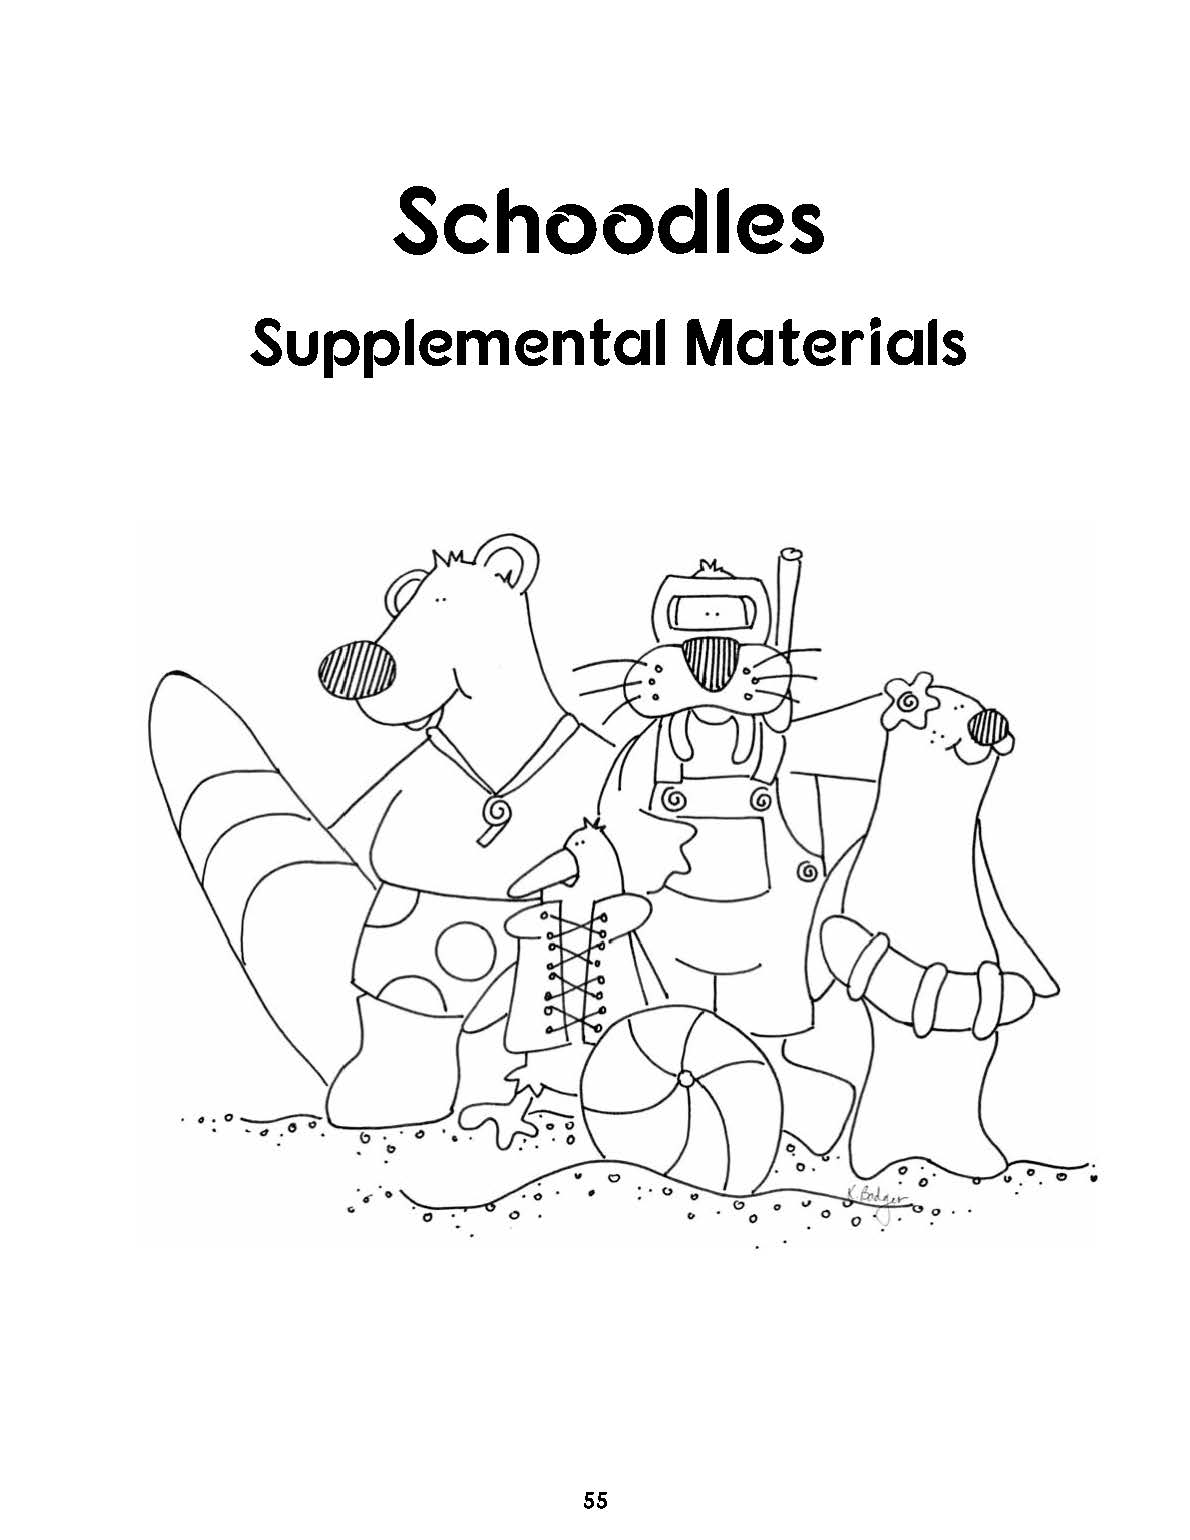 4th Edition Assessment Guide-Schoodles 36619 _Page_56